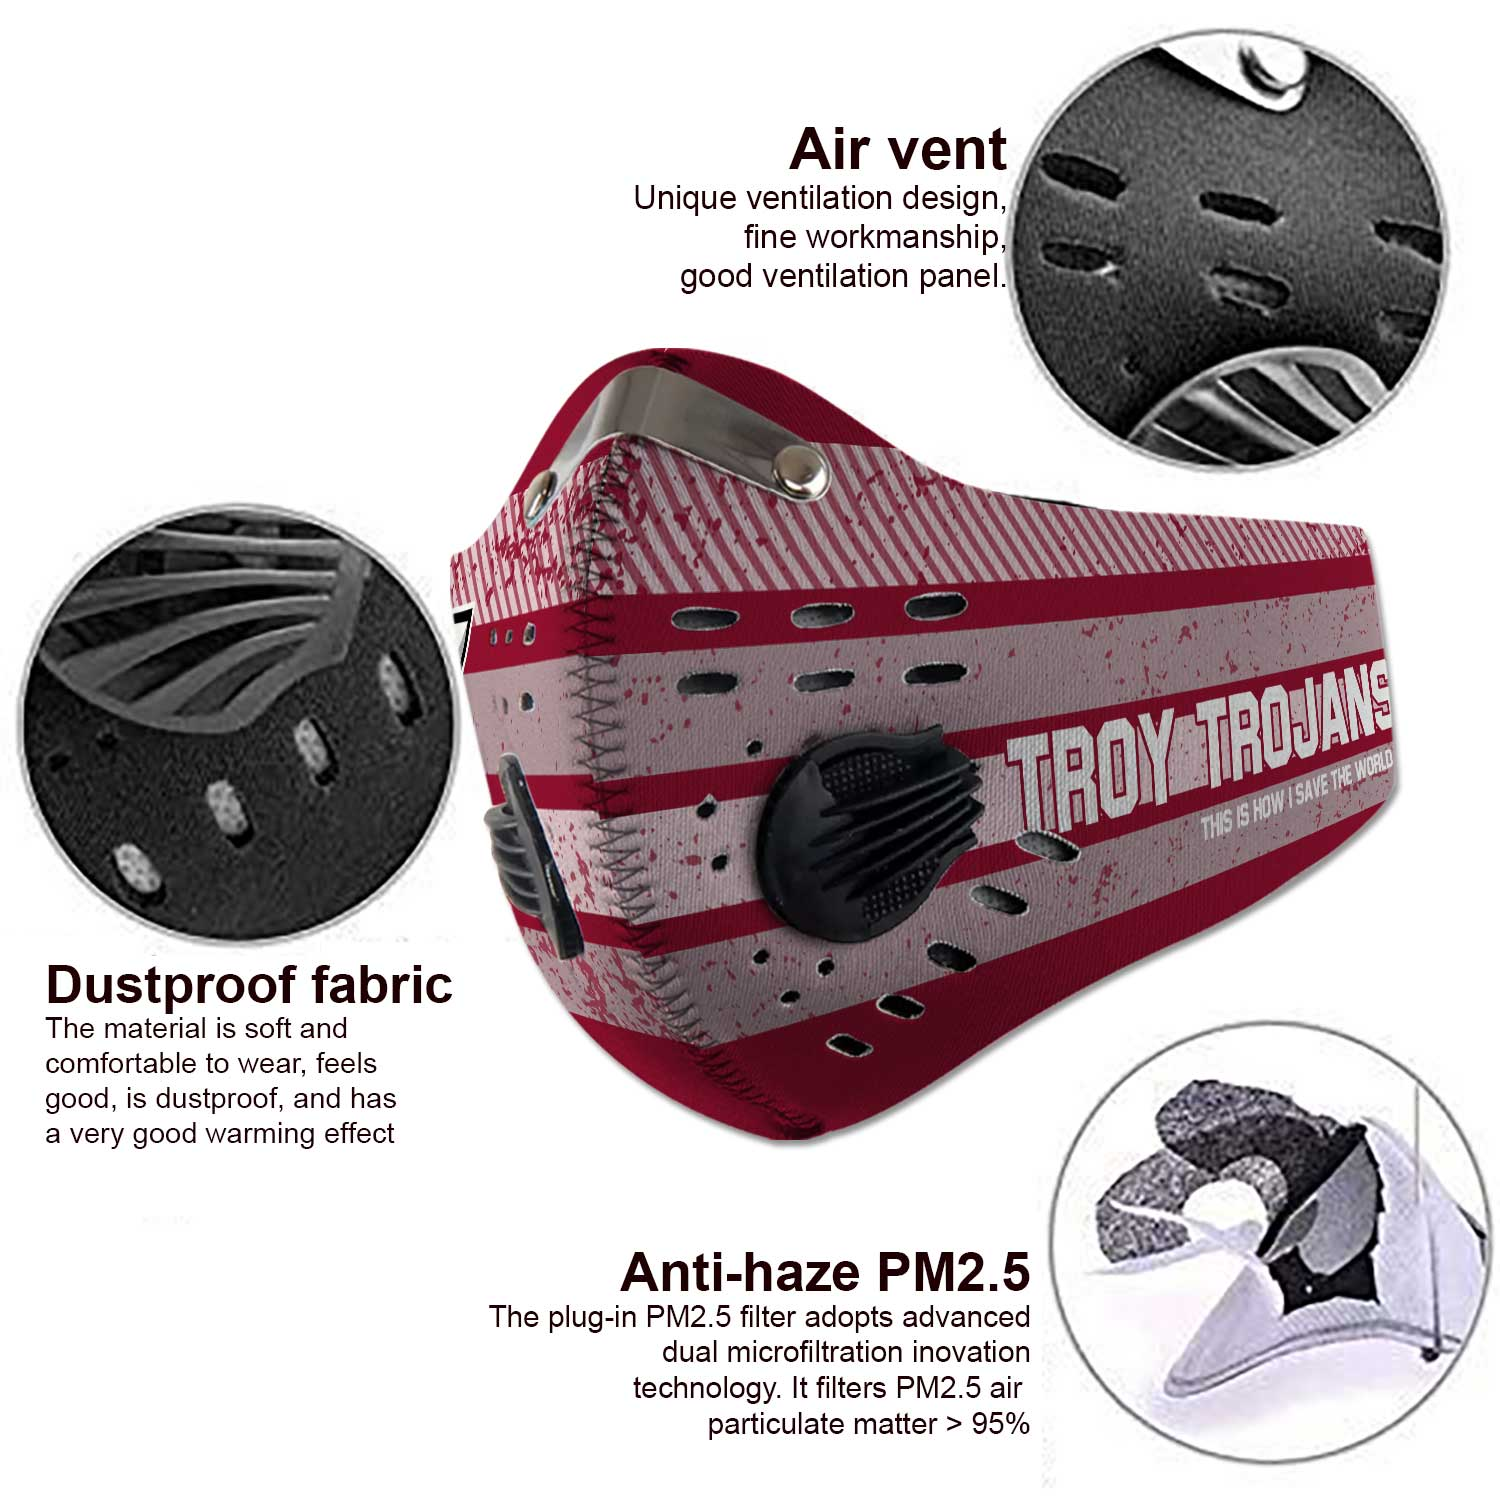 Troy trojans this is how i save the world carbon filter face mask 3